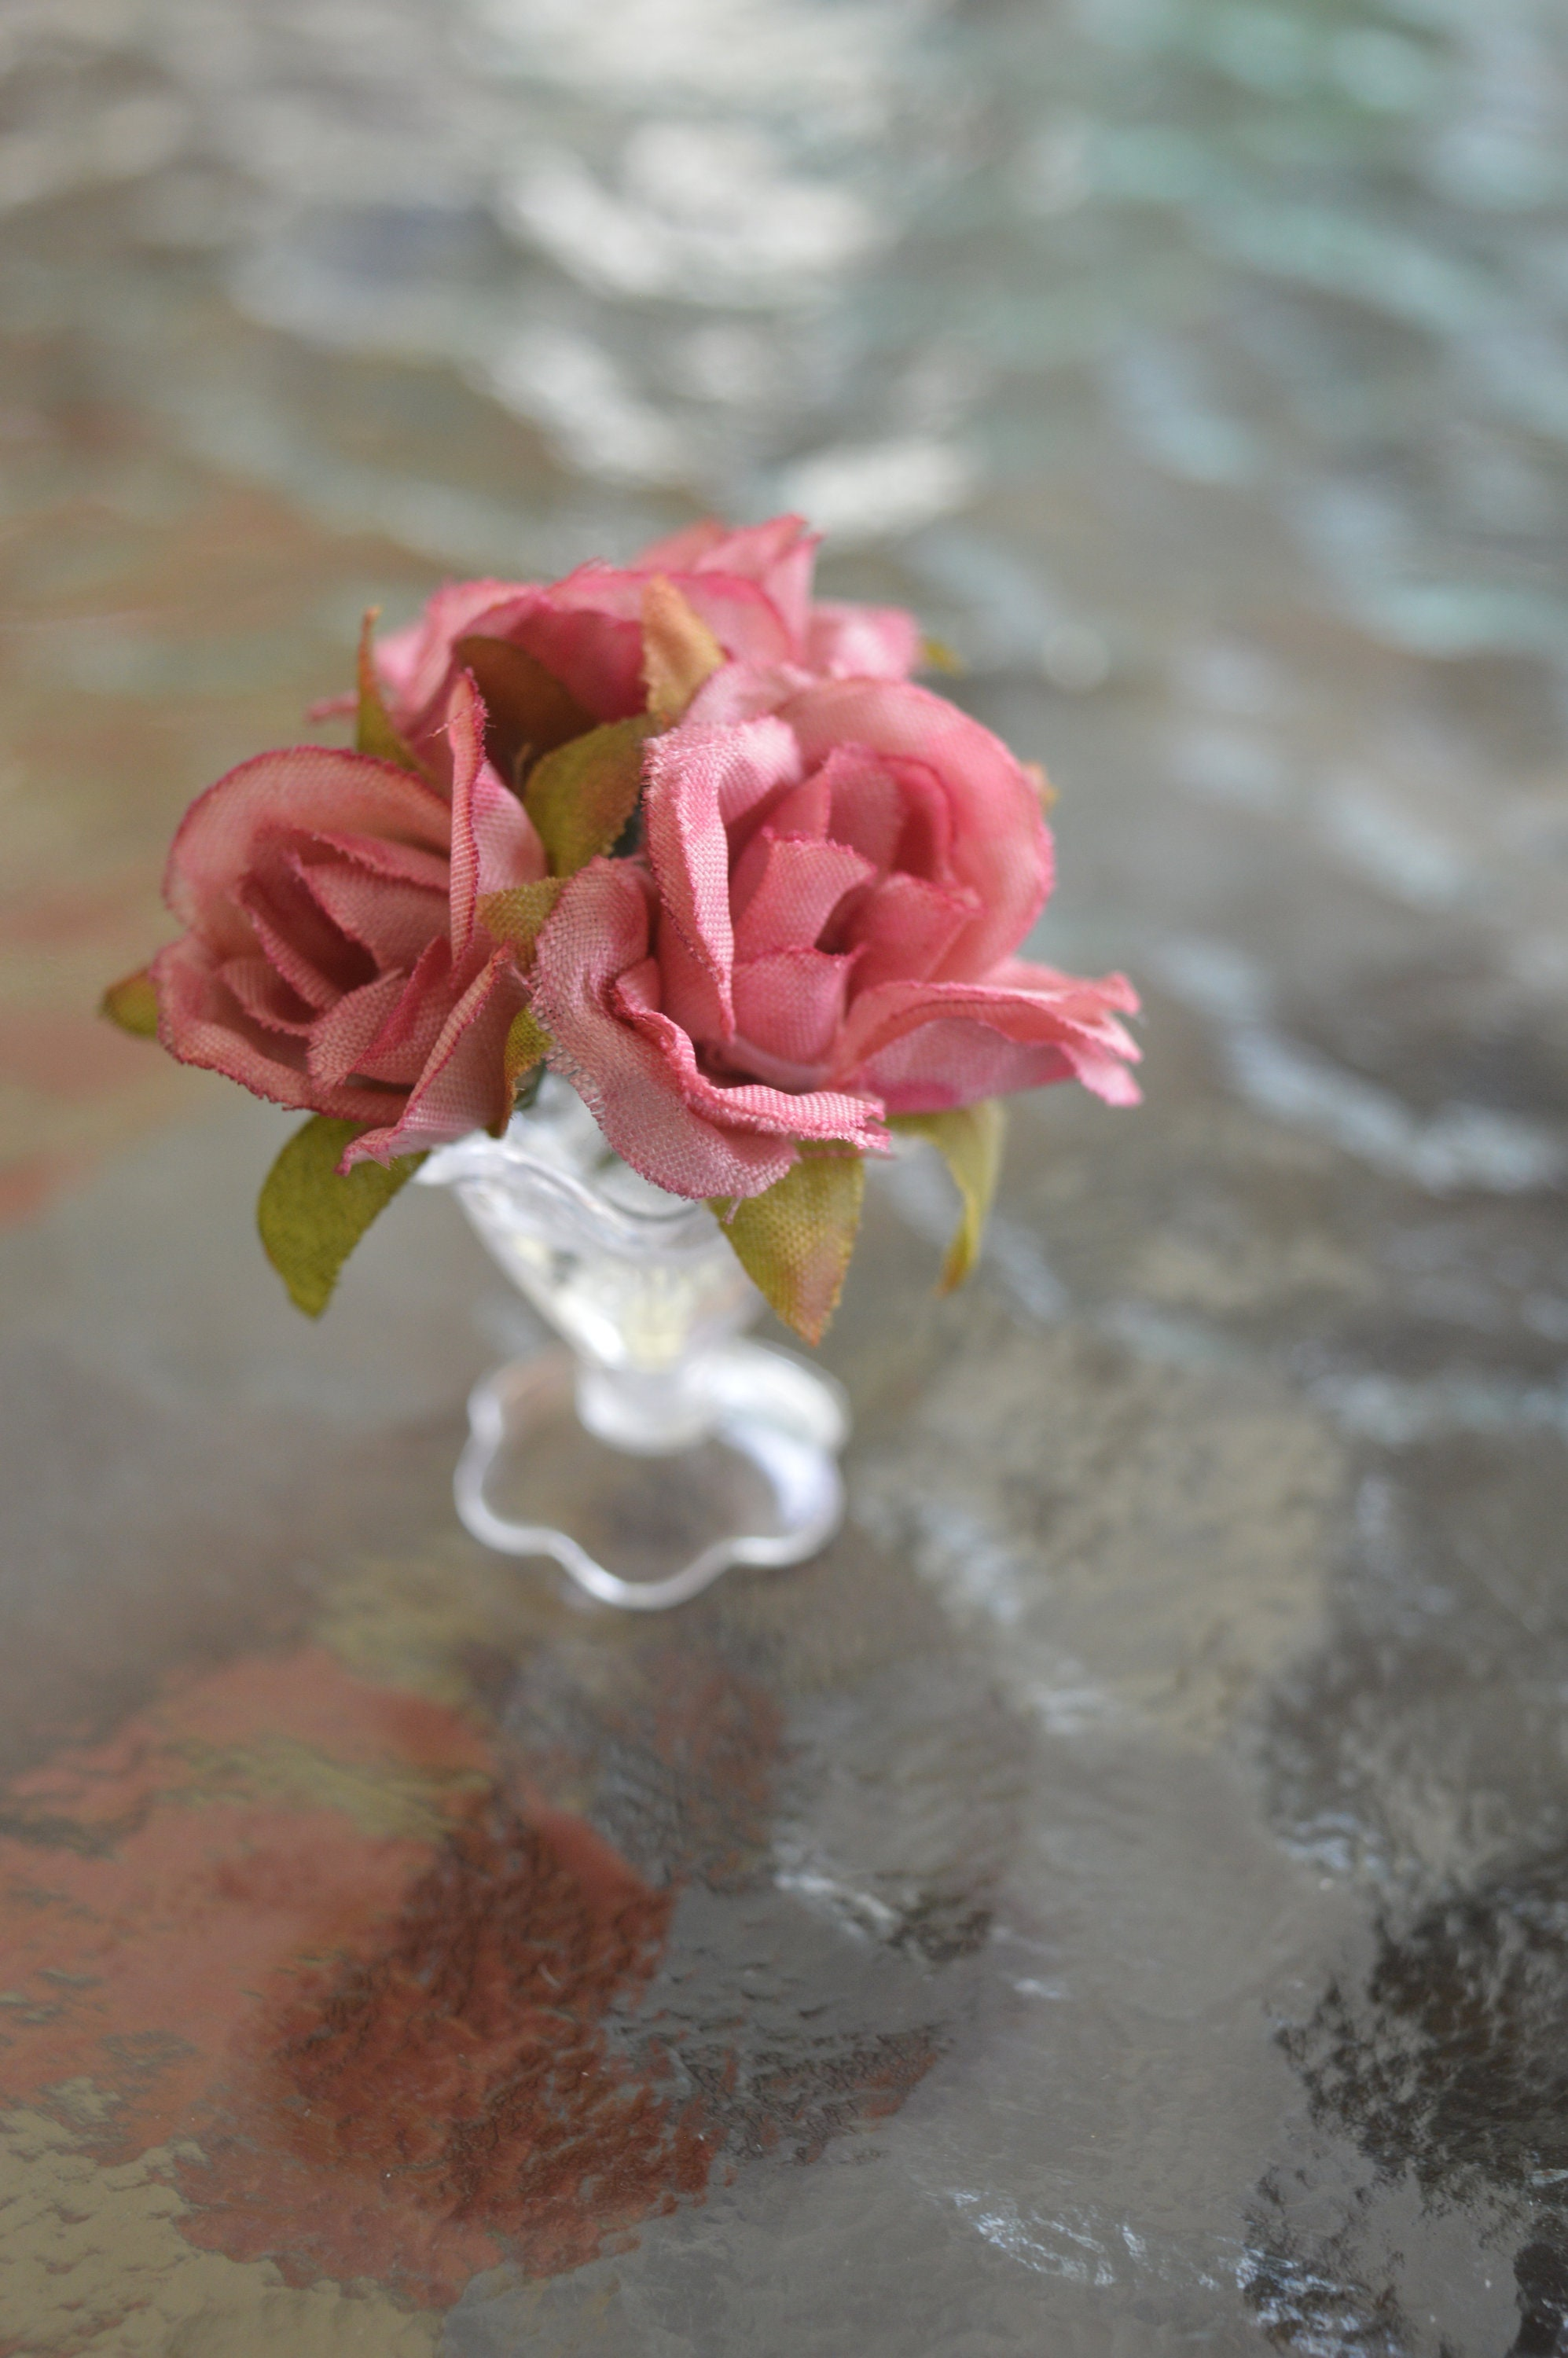 16 Floral Arrangement Silk Roses Ina 2 Tone Pink And Etsy